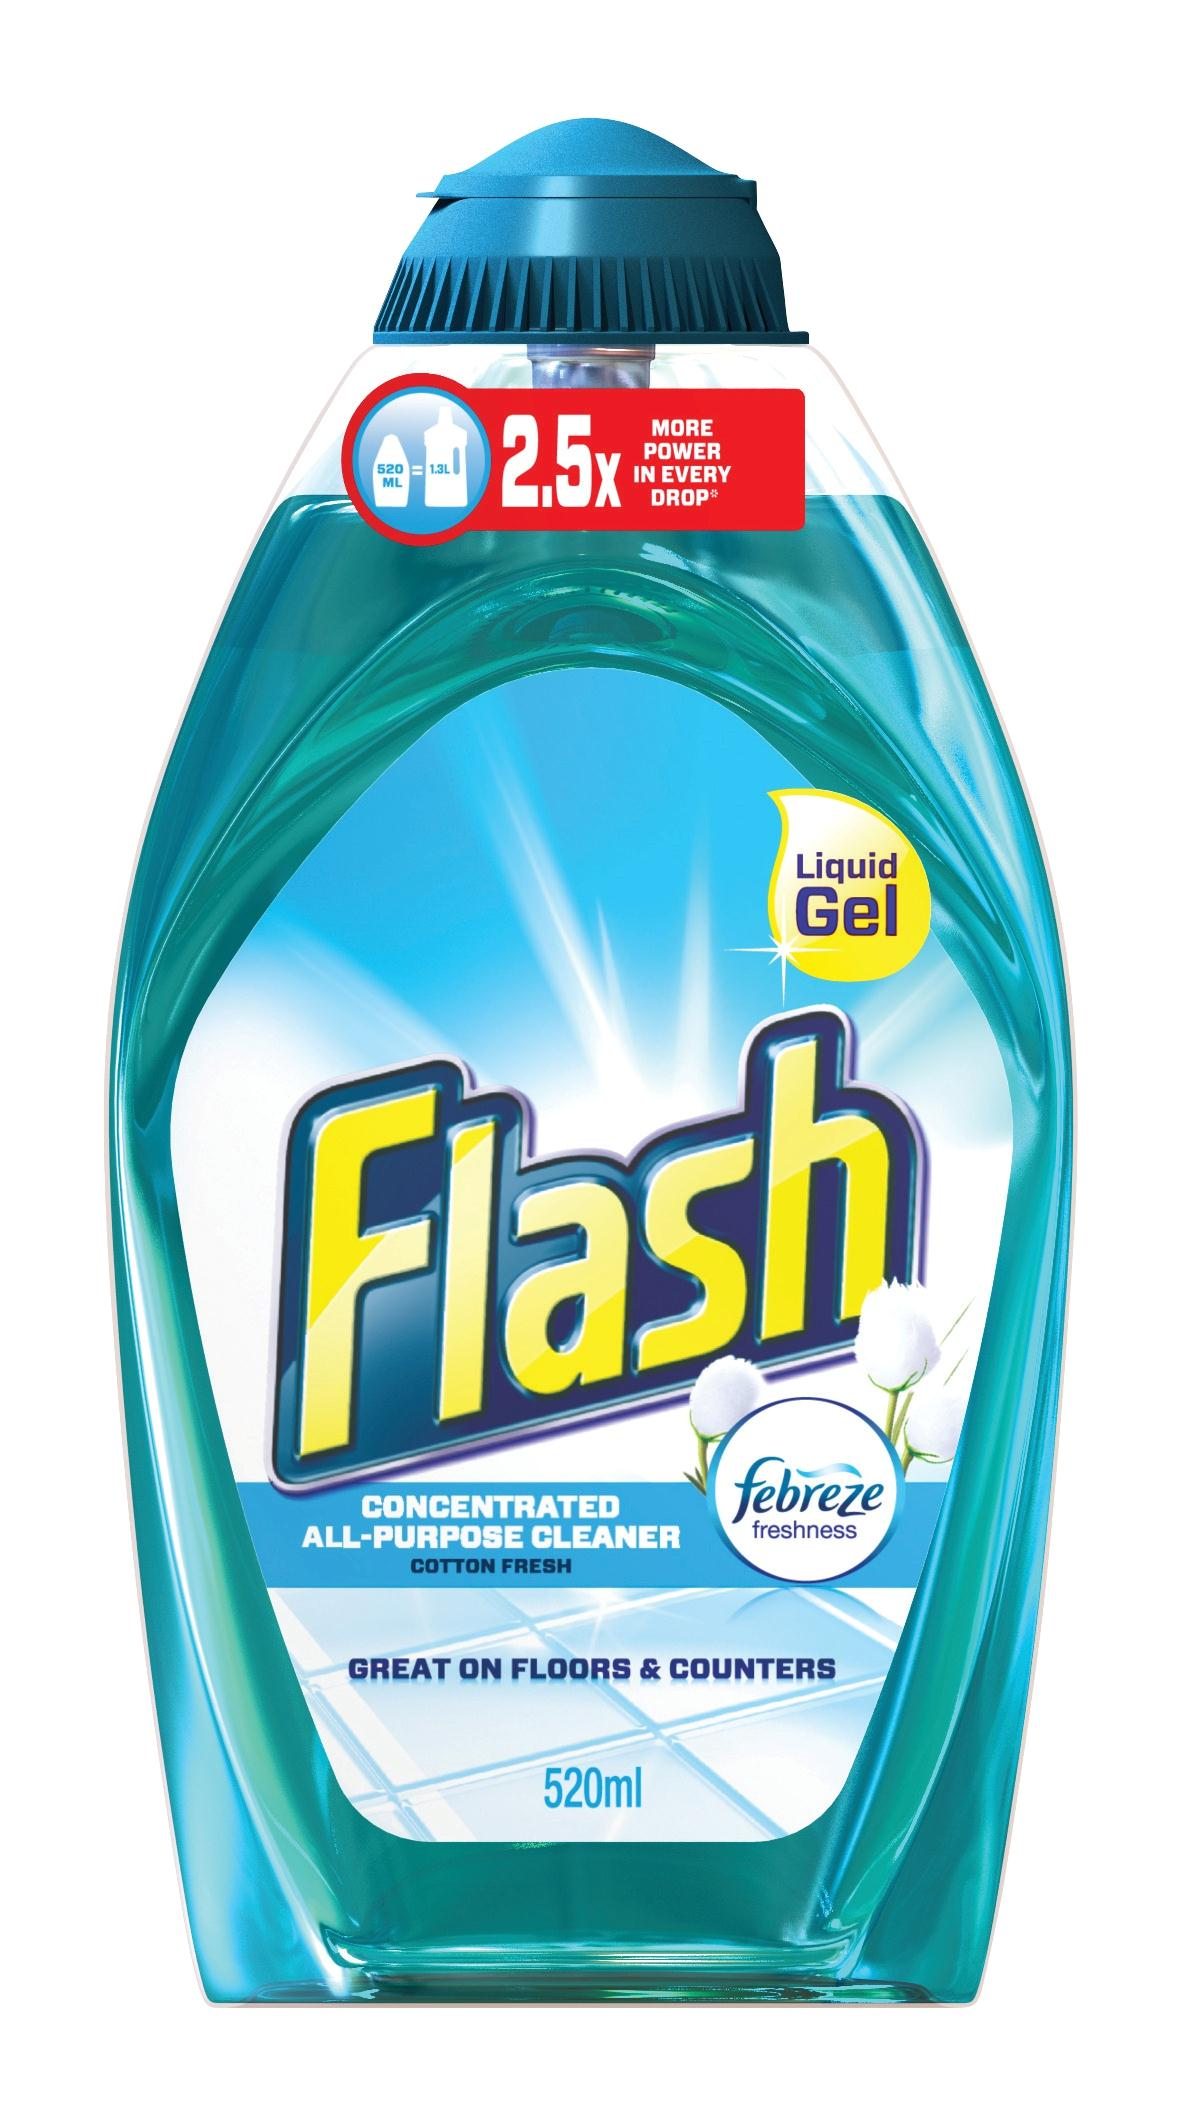 Flash Gel Flash Gel Cotton 520ml